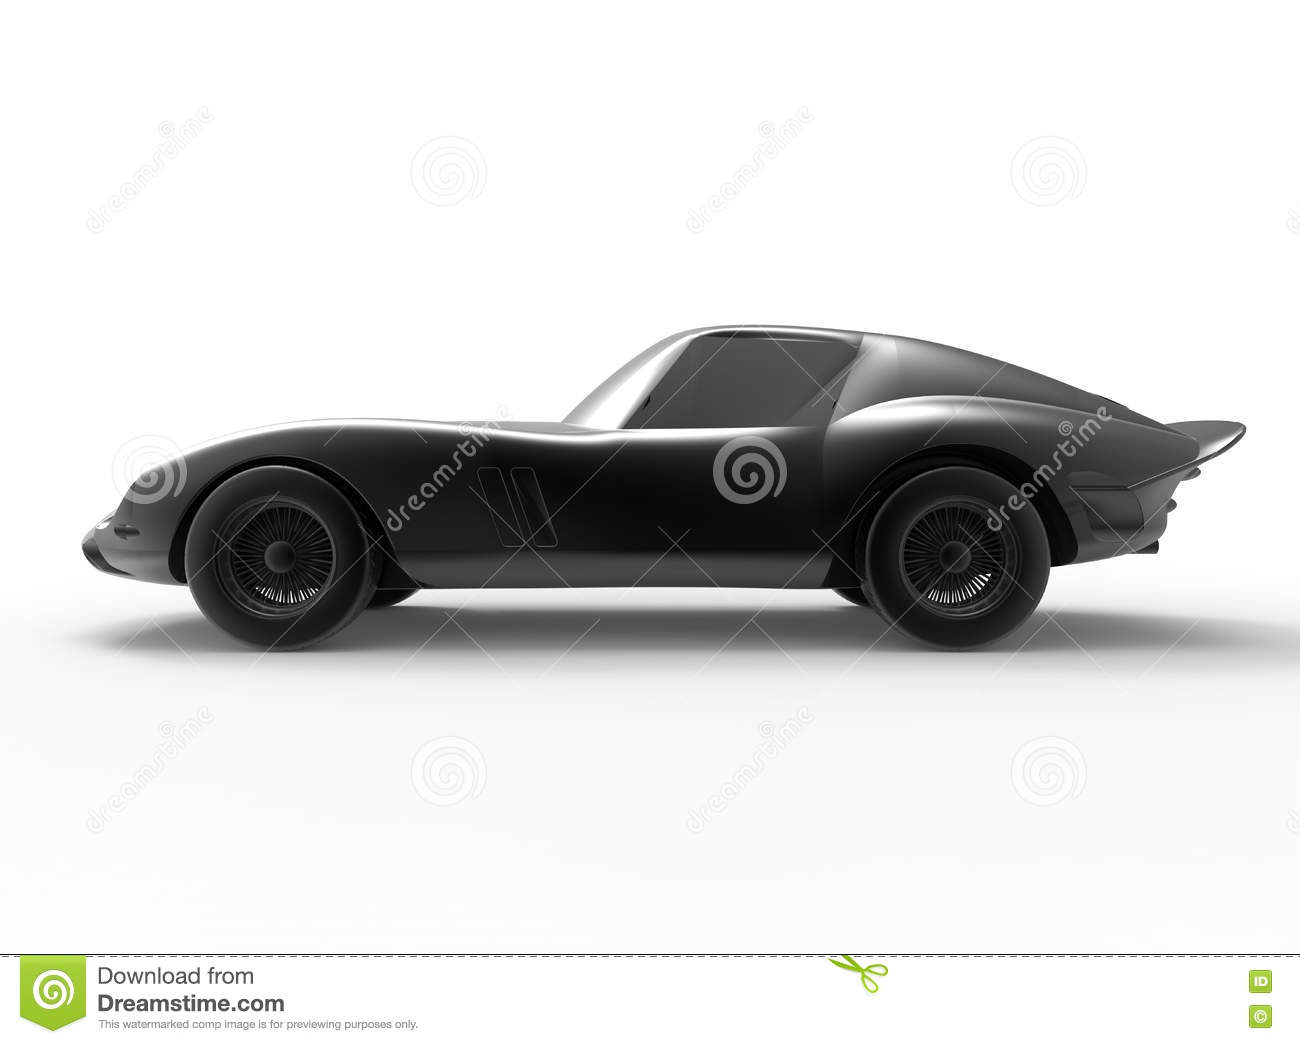 vintage sports car. The image illustrates the side view of the car